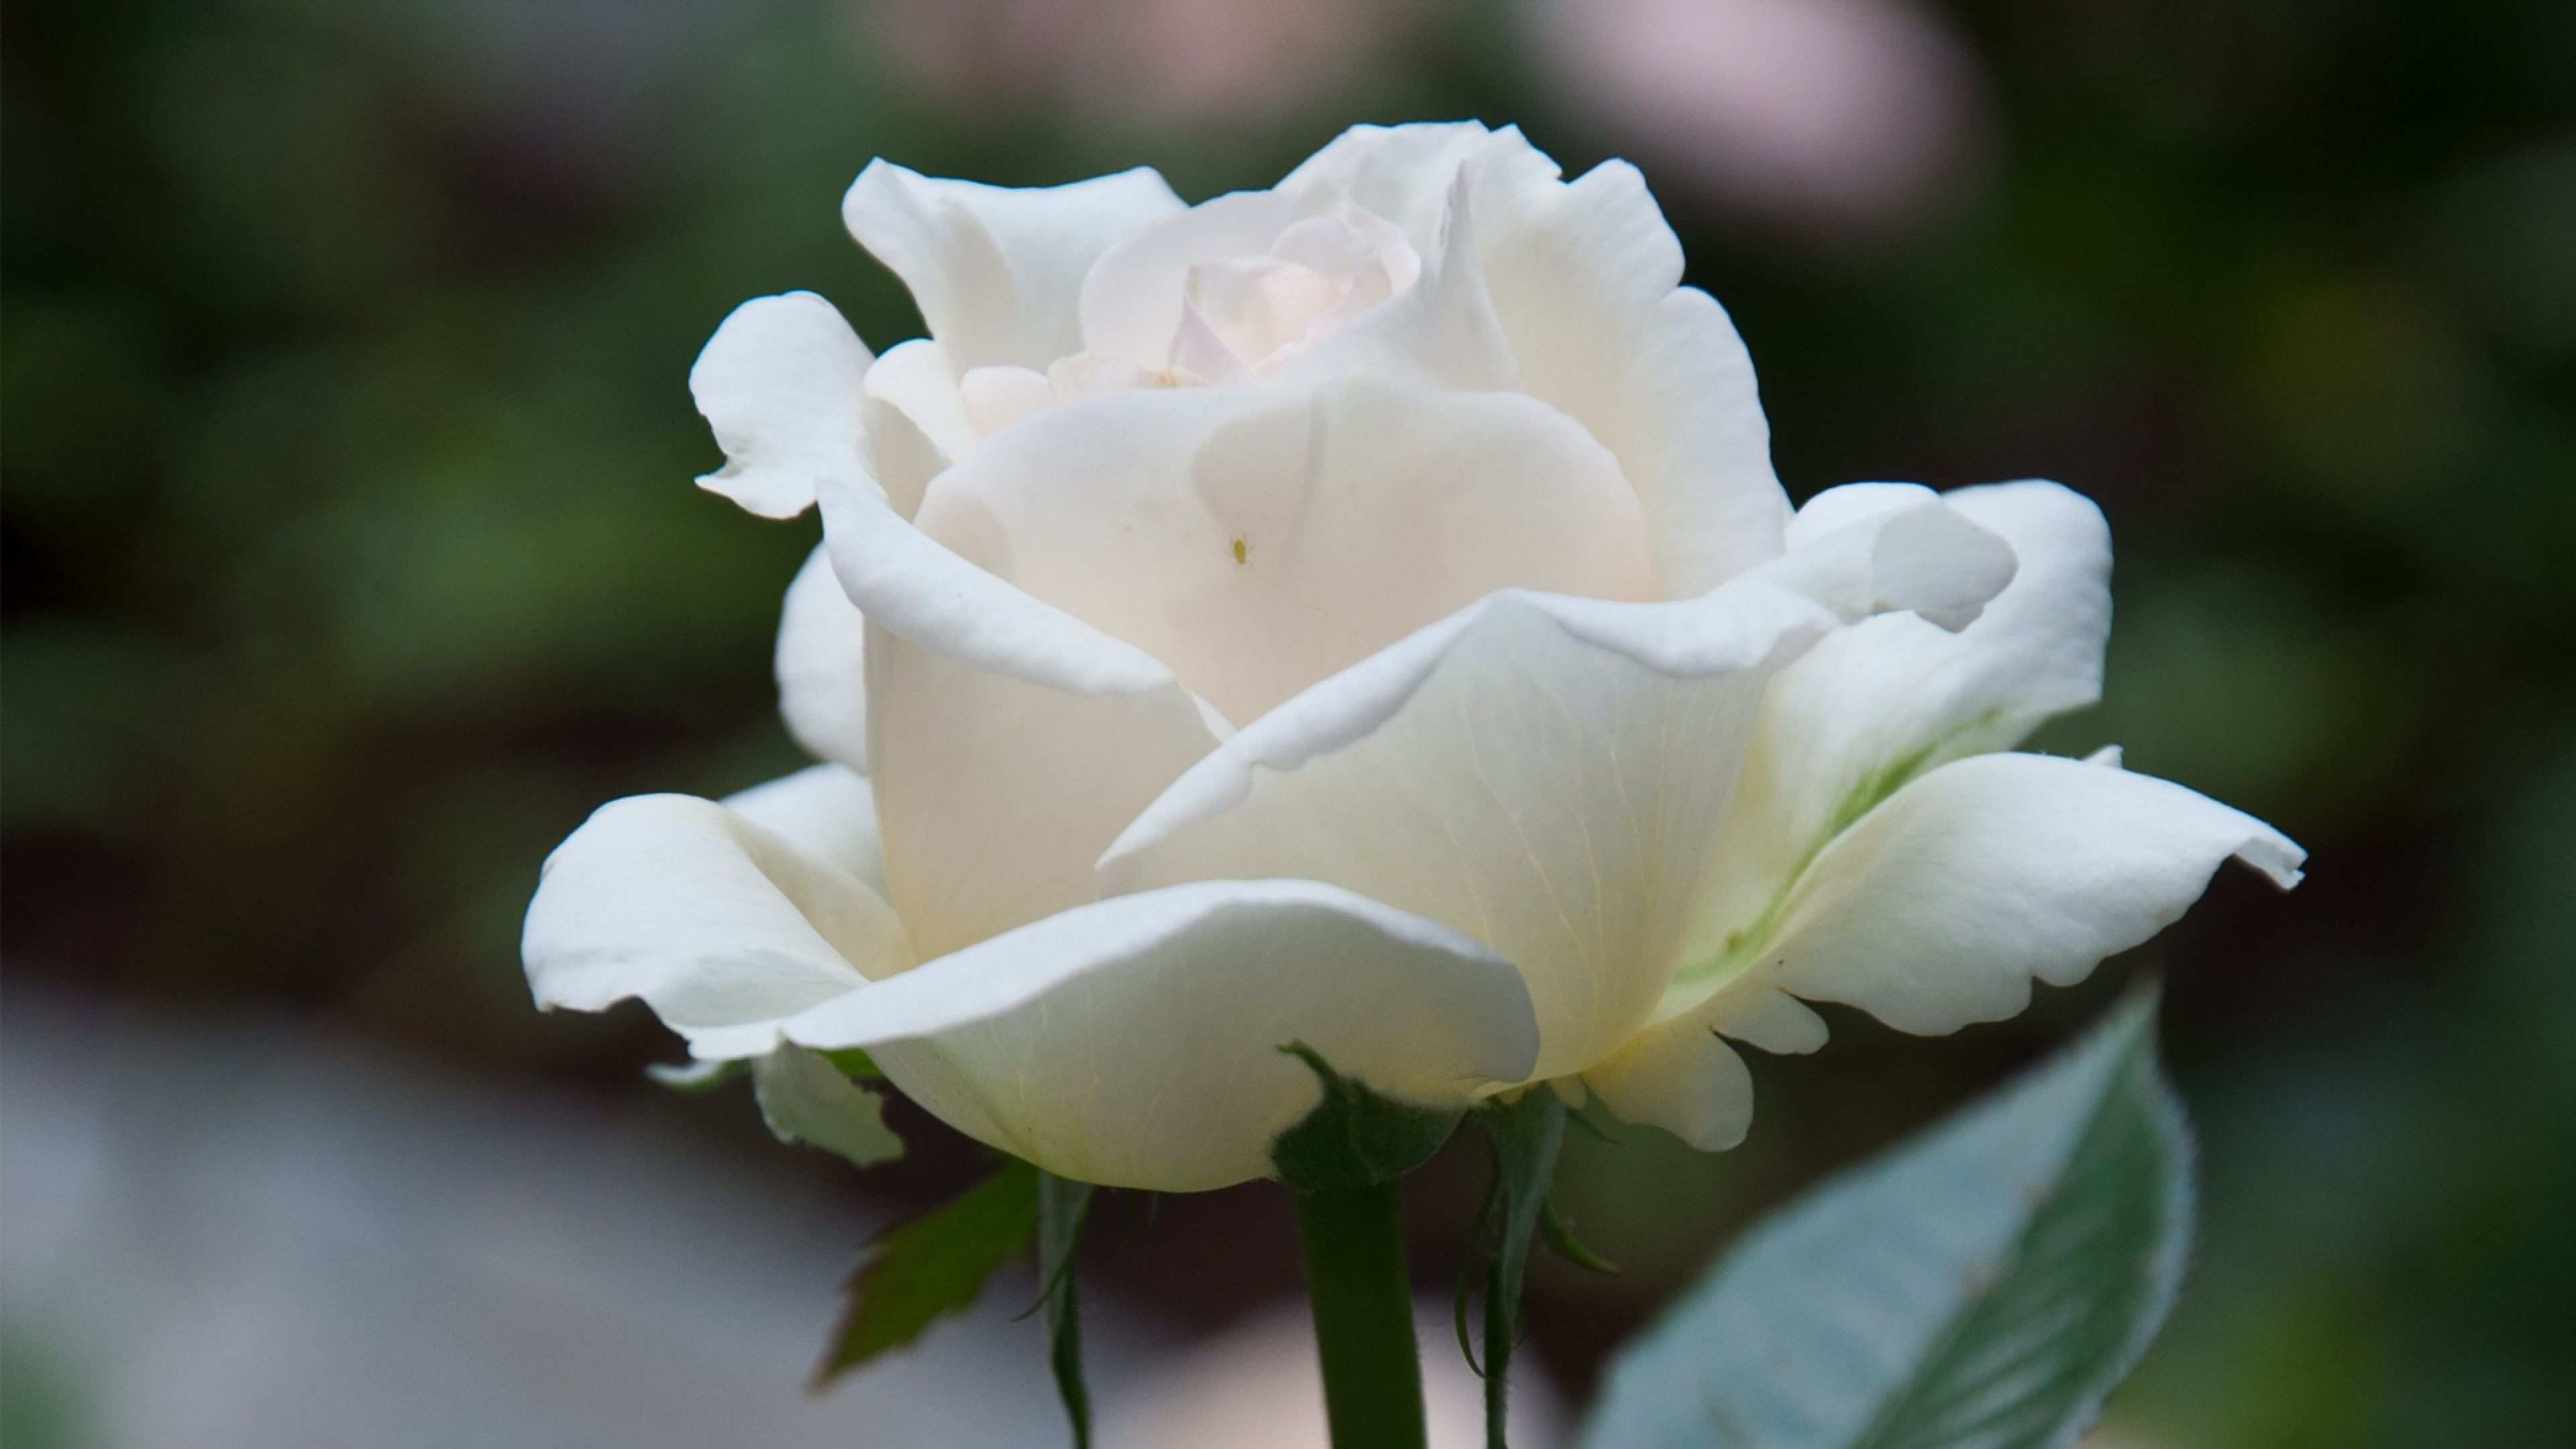 Beautiful White Rose 4k Flower Wallpapers And Hd Images Flowers